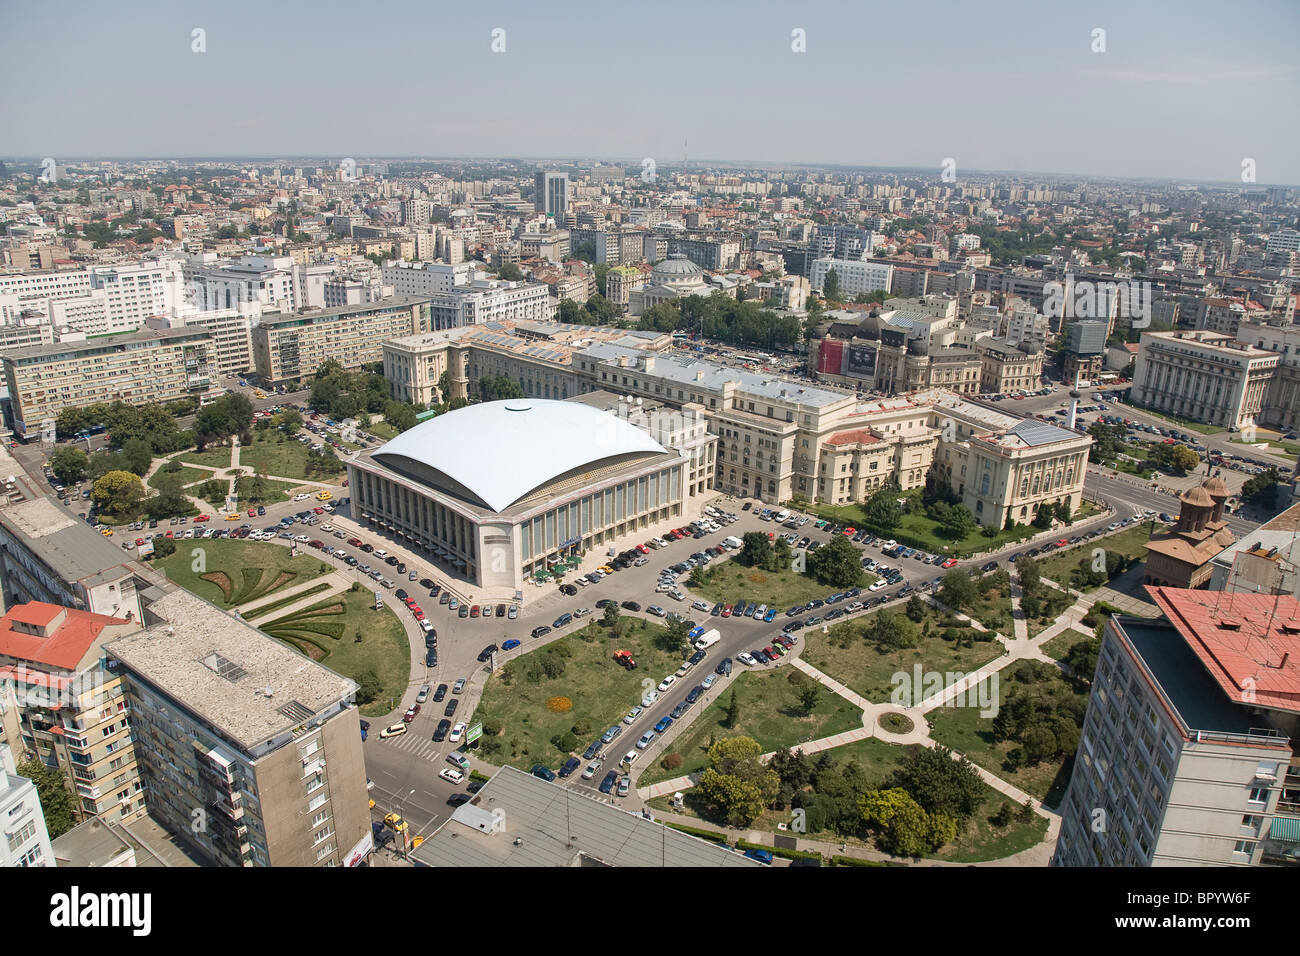 Aerial photograph of the modern city of Bucharest in Romania - Stock Image